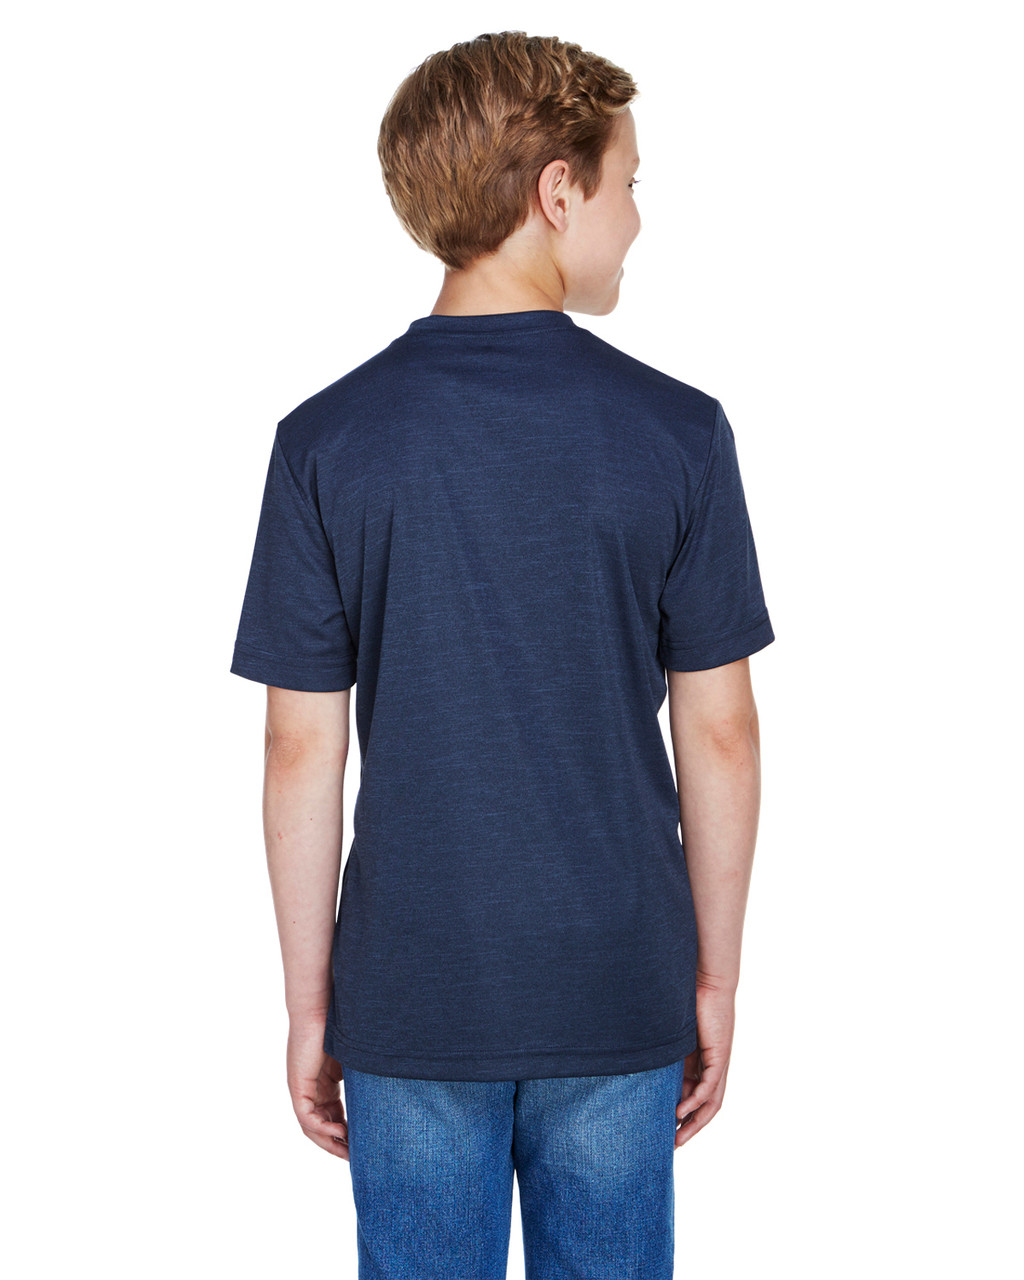 Sport Dark Navy Heather - Back, TT11HY Team 365 Youth Sonic Heather Performance T-Shirt | BlankClothing.ca